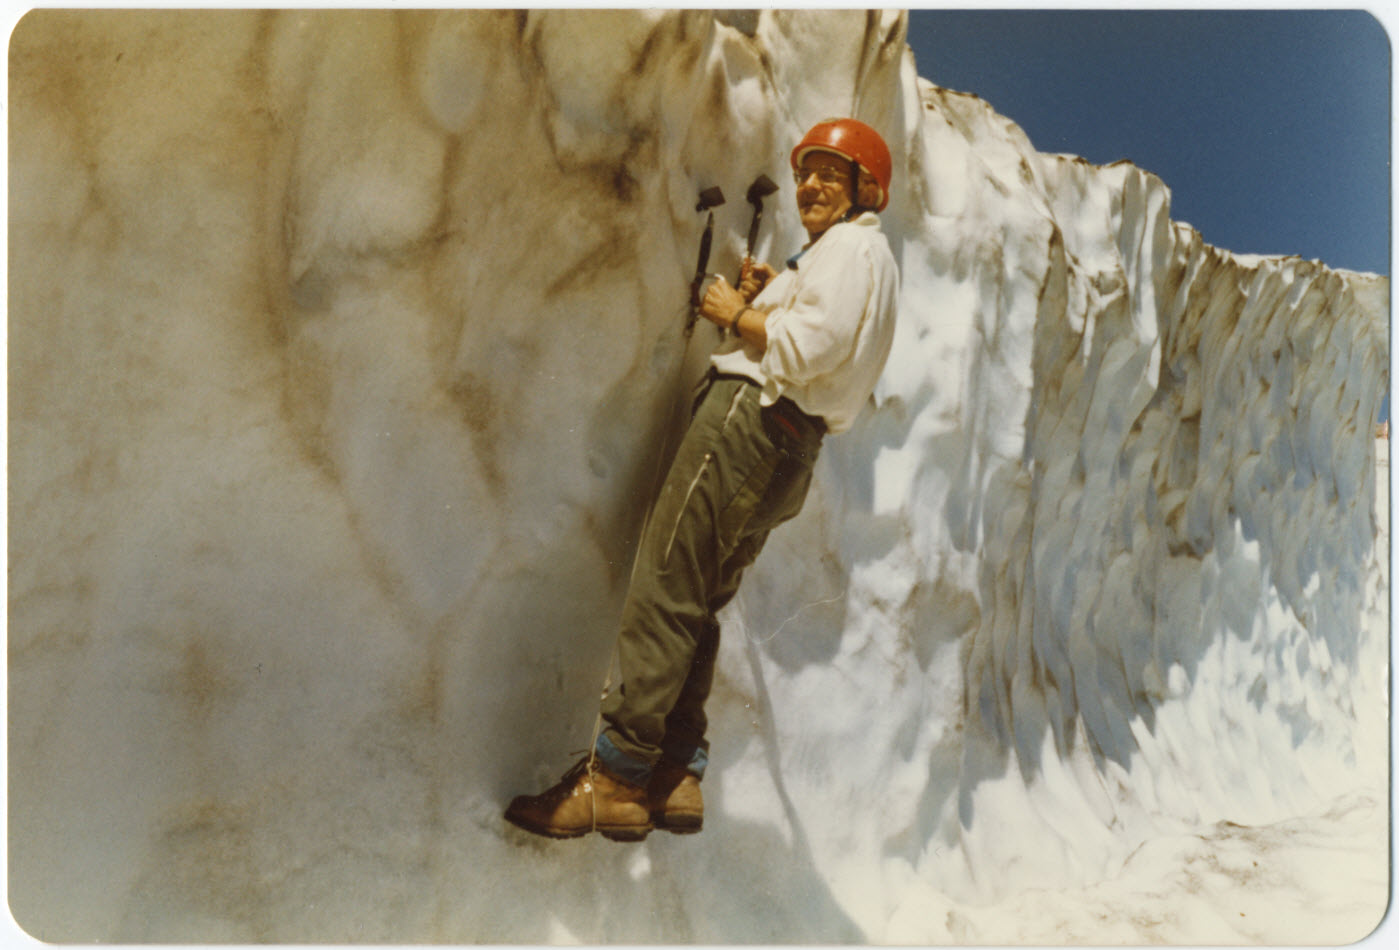 Larry Penberthy Mountain Safety Research